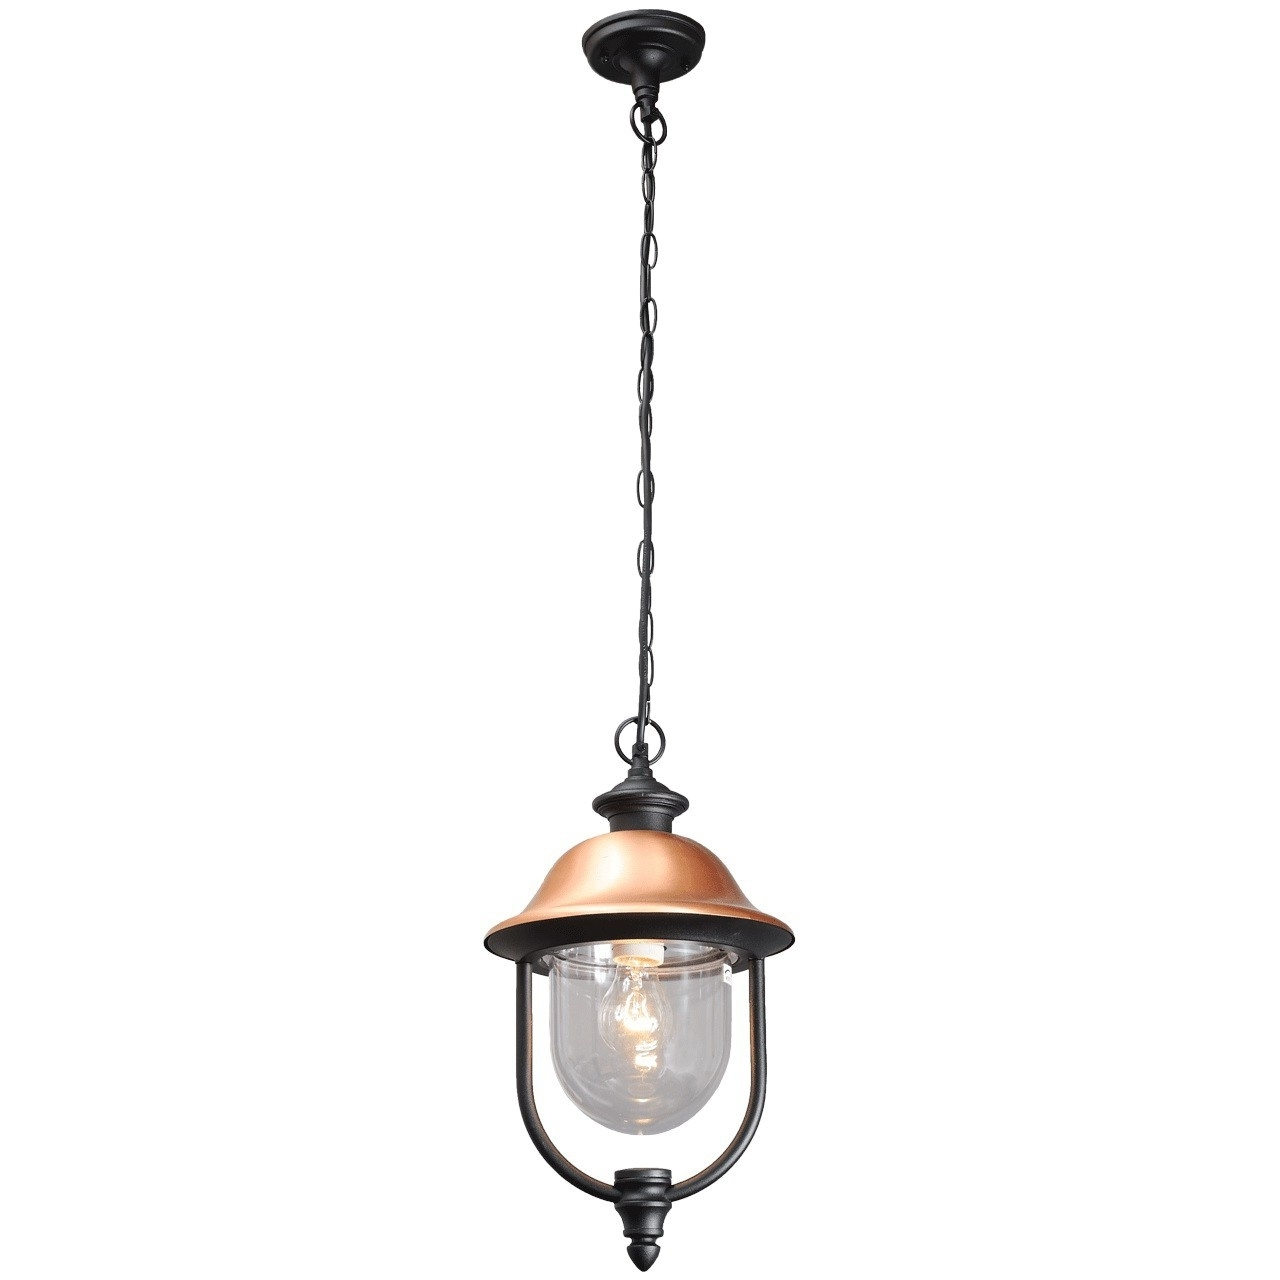 Outdoor Pendant Light Crystal Pendant Light' Brushed Nickel Mini Pertaining To Popular Outdoor Hanging Orb Lights (View 16 of 20)